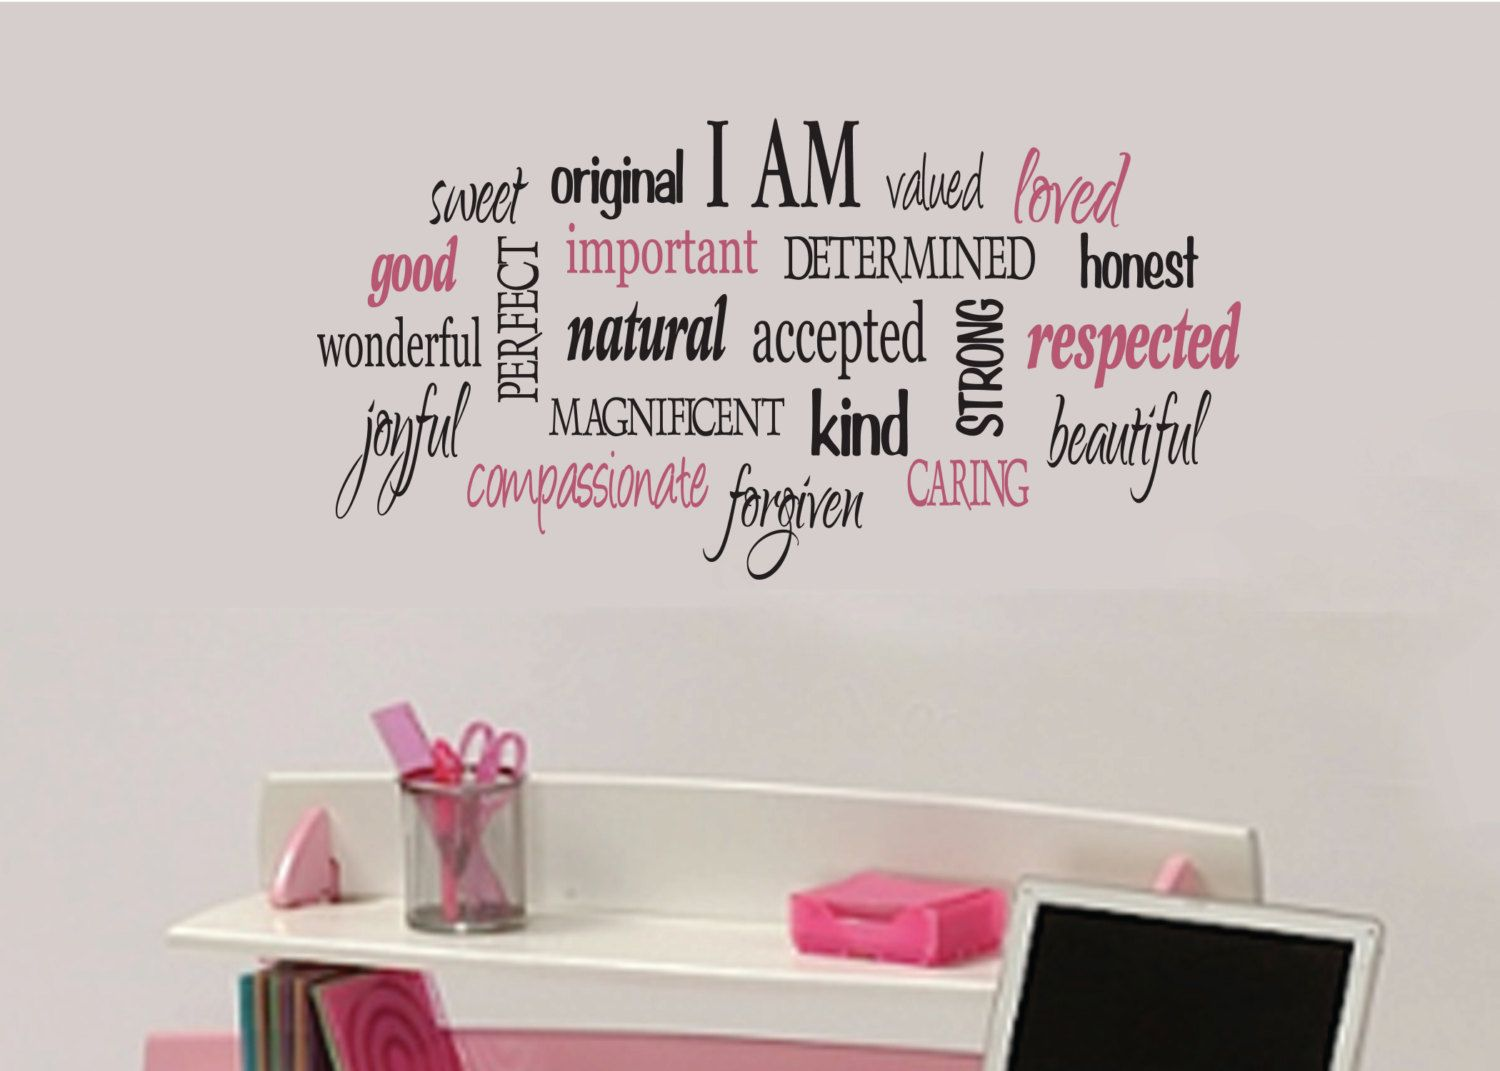 I am positive word collage for girls teen girl vinyl wall design i am positive word collage for girls teen girl vinyl wall design teen decor love quote wordle 15 x30 amipublicfo Gallery